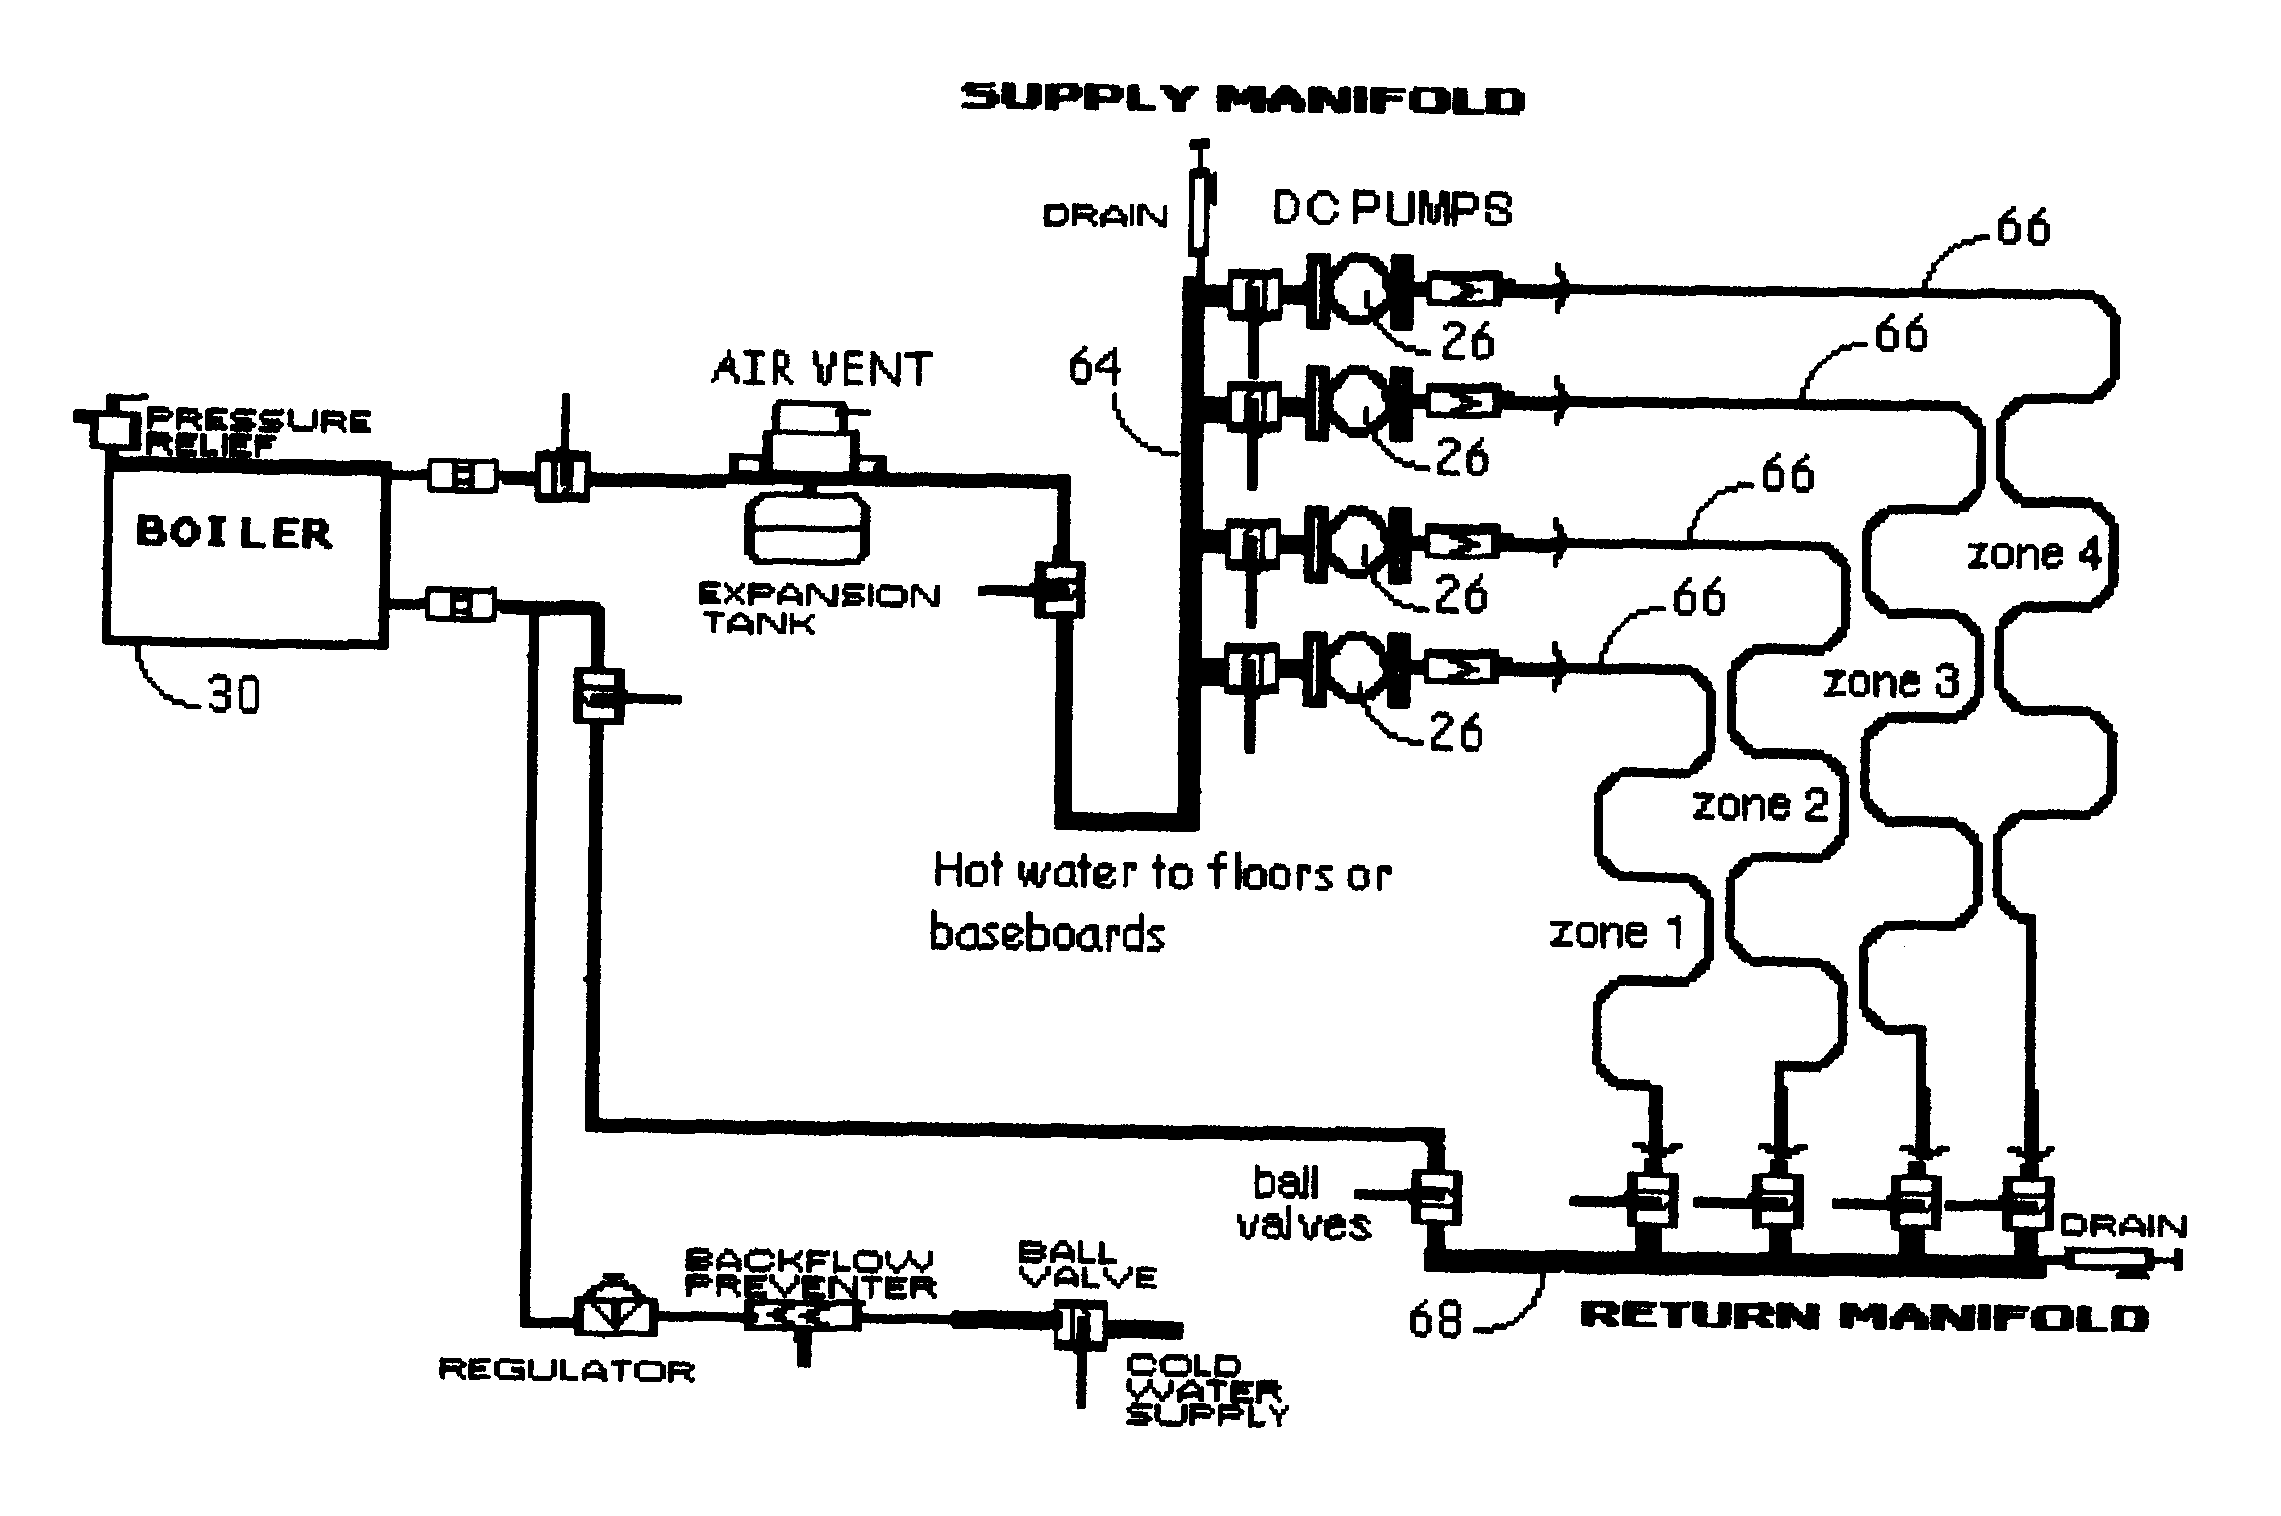 HVAC  pressor Hard Start further 8882956 besides C11 likewise How To Read Electrical Wiring Diagrams besides 00001. on simple central heating wiring diagram